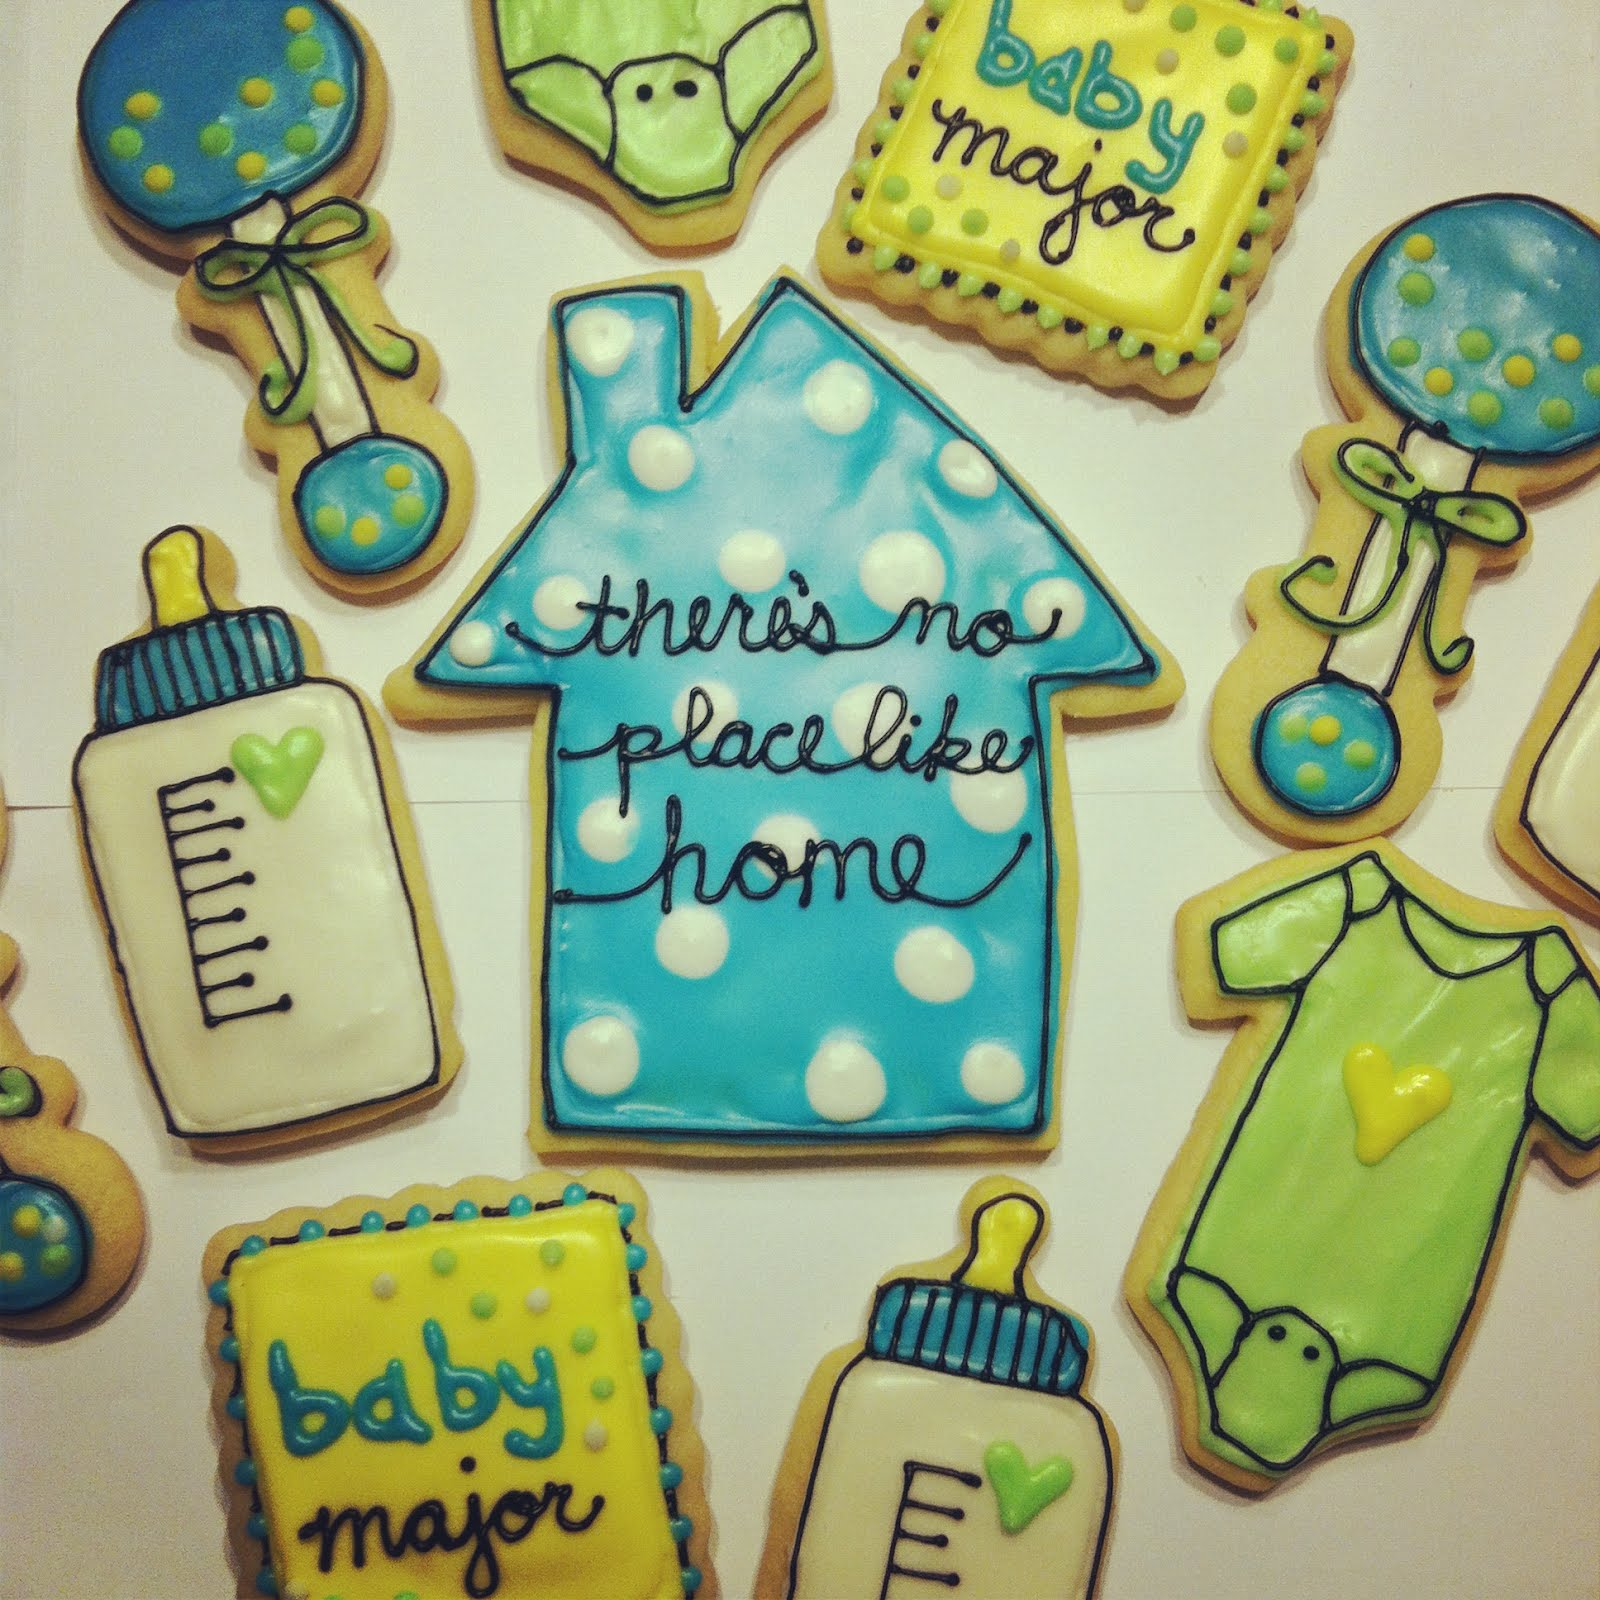 Delicieux Welcome Home Baby Decorations Images Galleries With A Bite Decoration Ideas